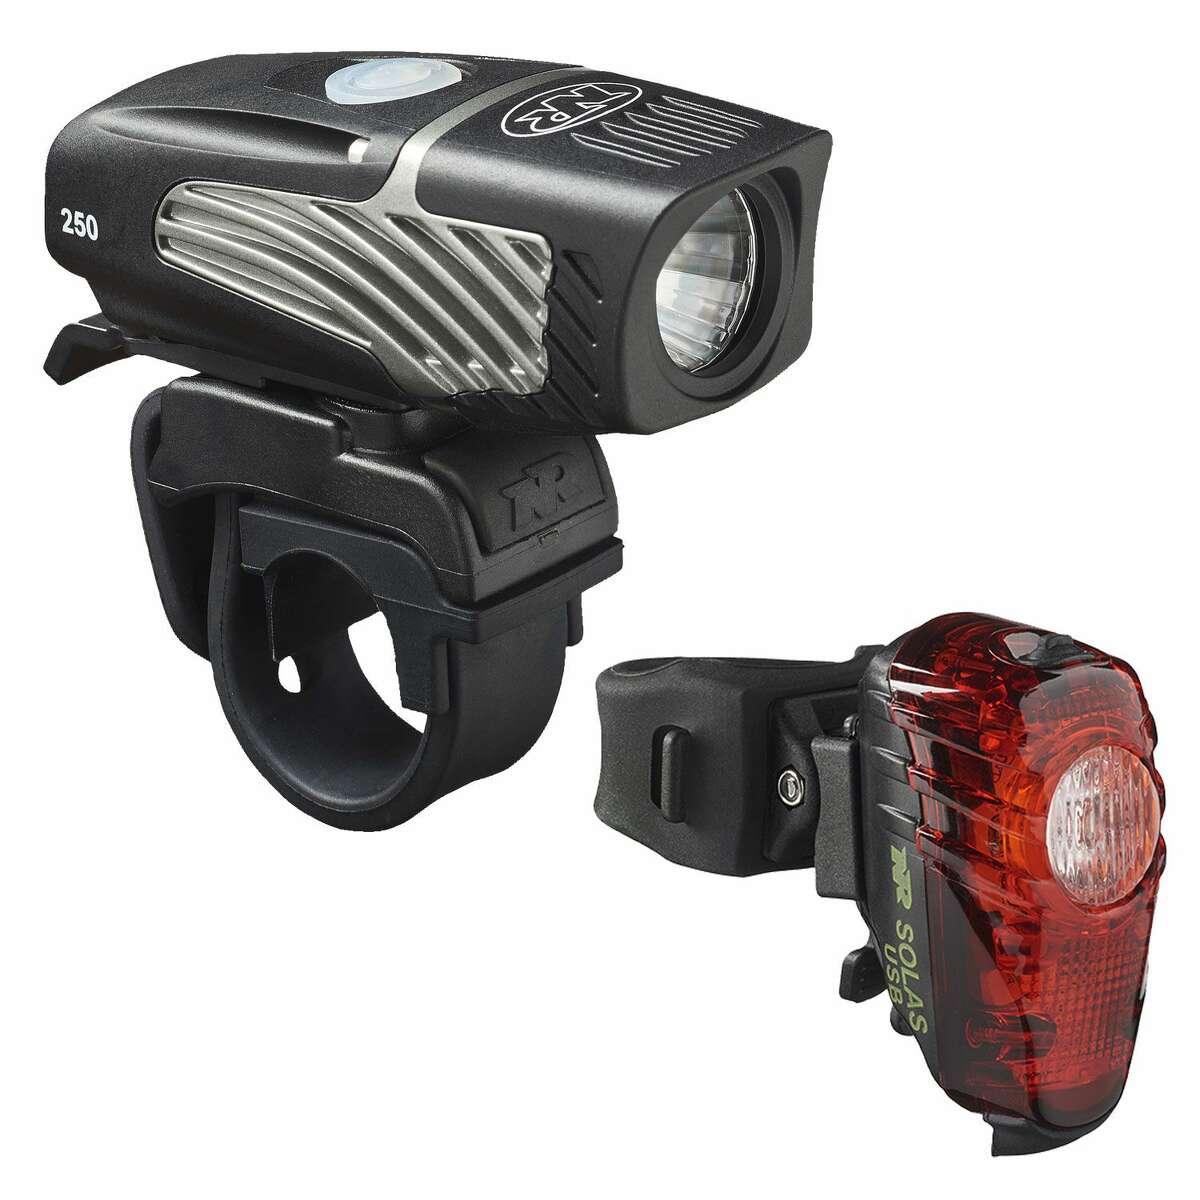 NiteRider Lumina Micro 250 USB LED Headlight and Solas 30 Lumen USB Tail Light: $80 BUY NOW If you're the type to squeeze in an after-work bike ride right around sunset, be smart. Attach this USB-rechargeable, LED-powered set from NiteRider to the front and rear of your ride - in case you ever get stuck out in the dark, passerby on the road will clearly see you coming. More: The Best Cycling Gear On The Market